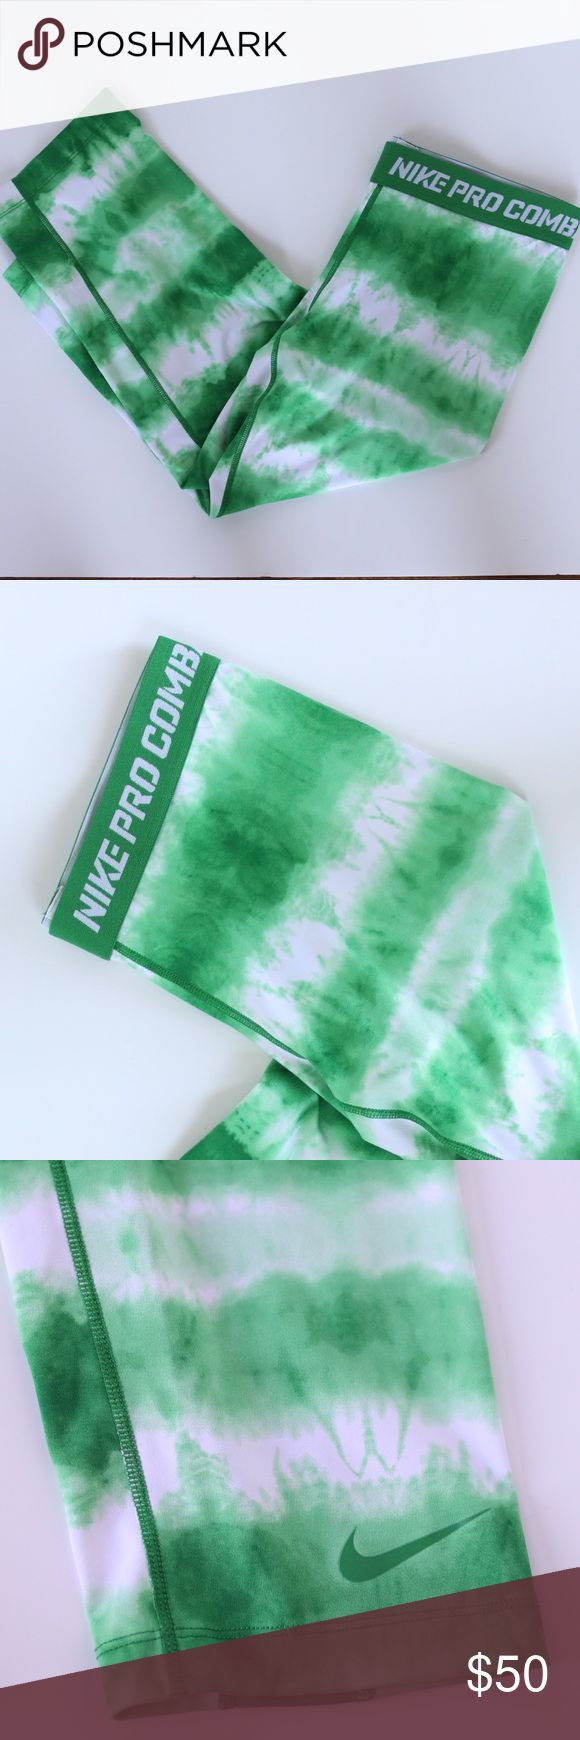 Nike Pro Combat Compression Tie Dye Leggings These green tie dye leggings are like new! There are no signs of wear.  Nike Pro Combat Compression Tie Dye Leggings Nike Pants Leggings